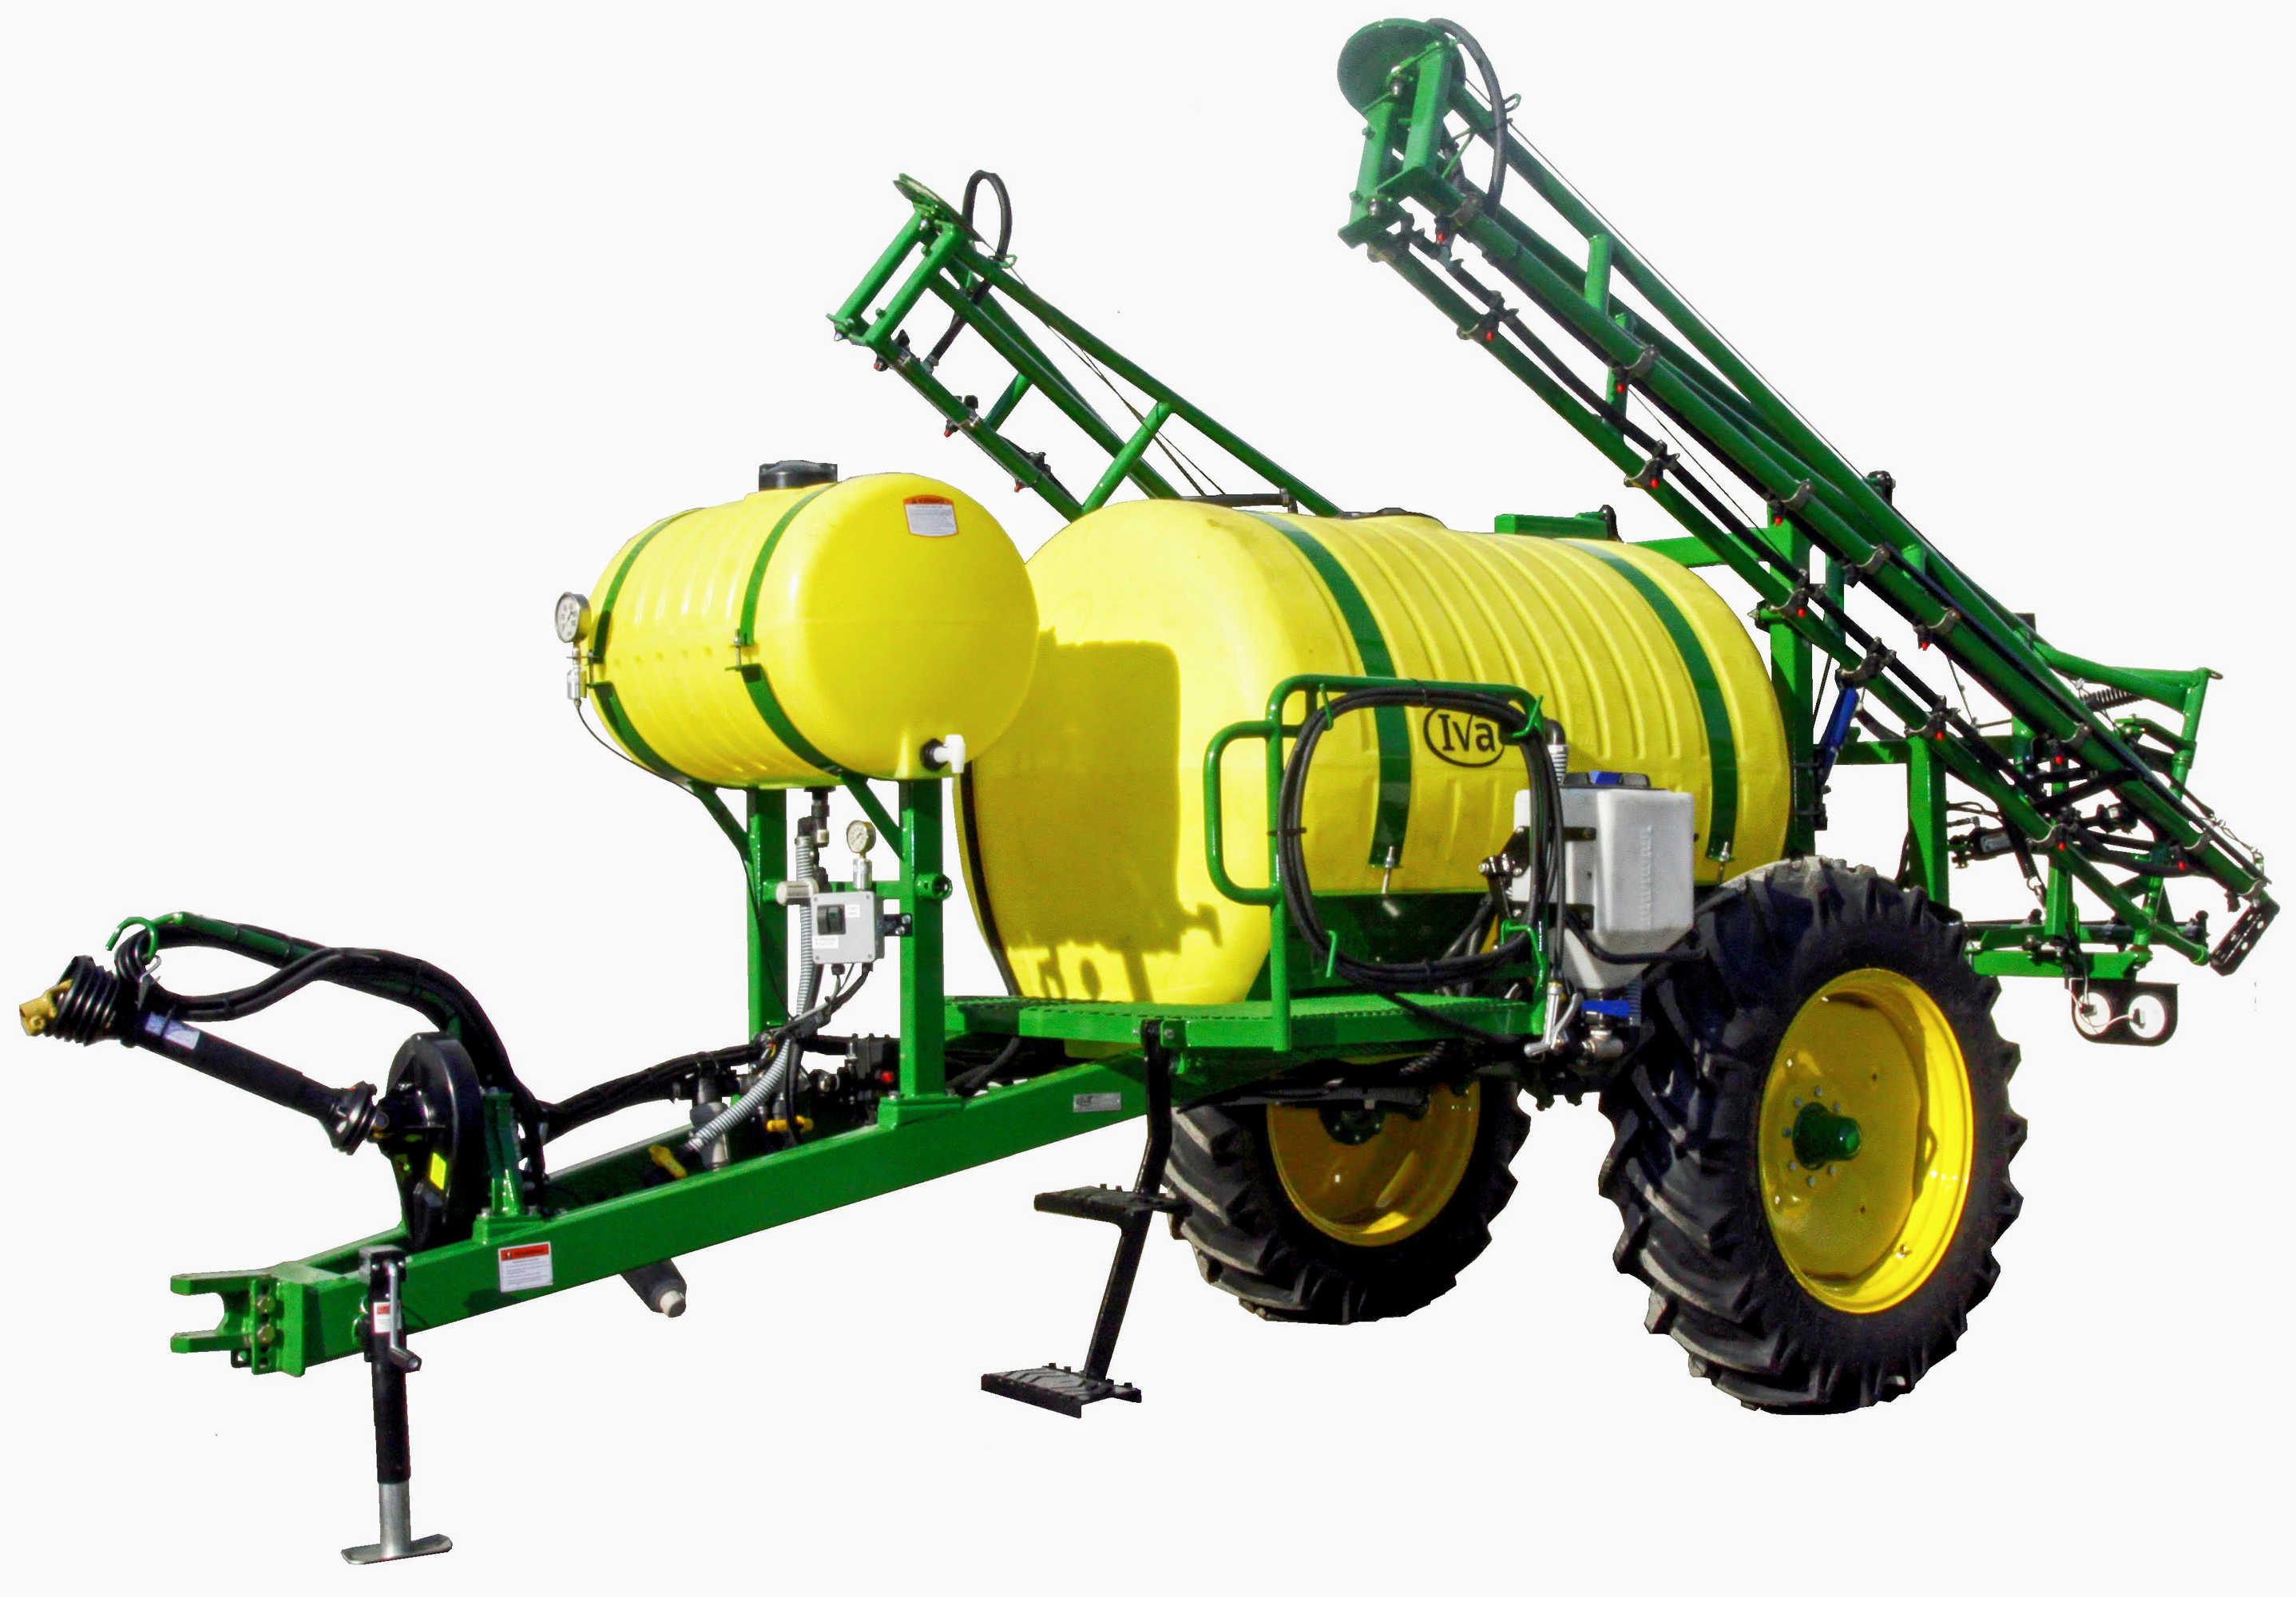 500 gallon Field Sprayer with 45' SpringRide Booms